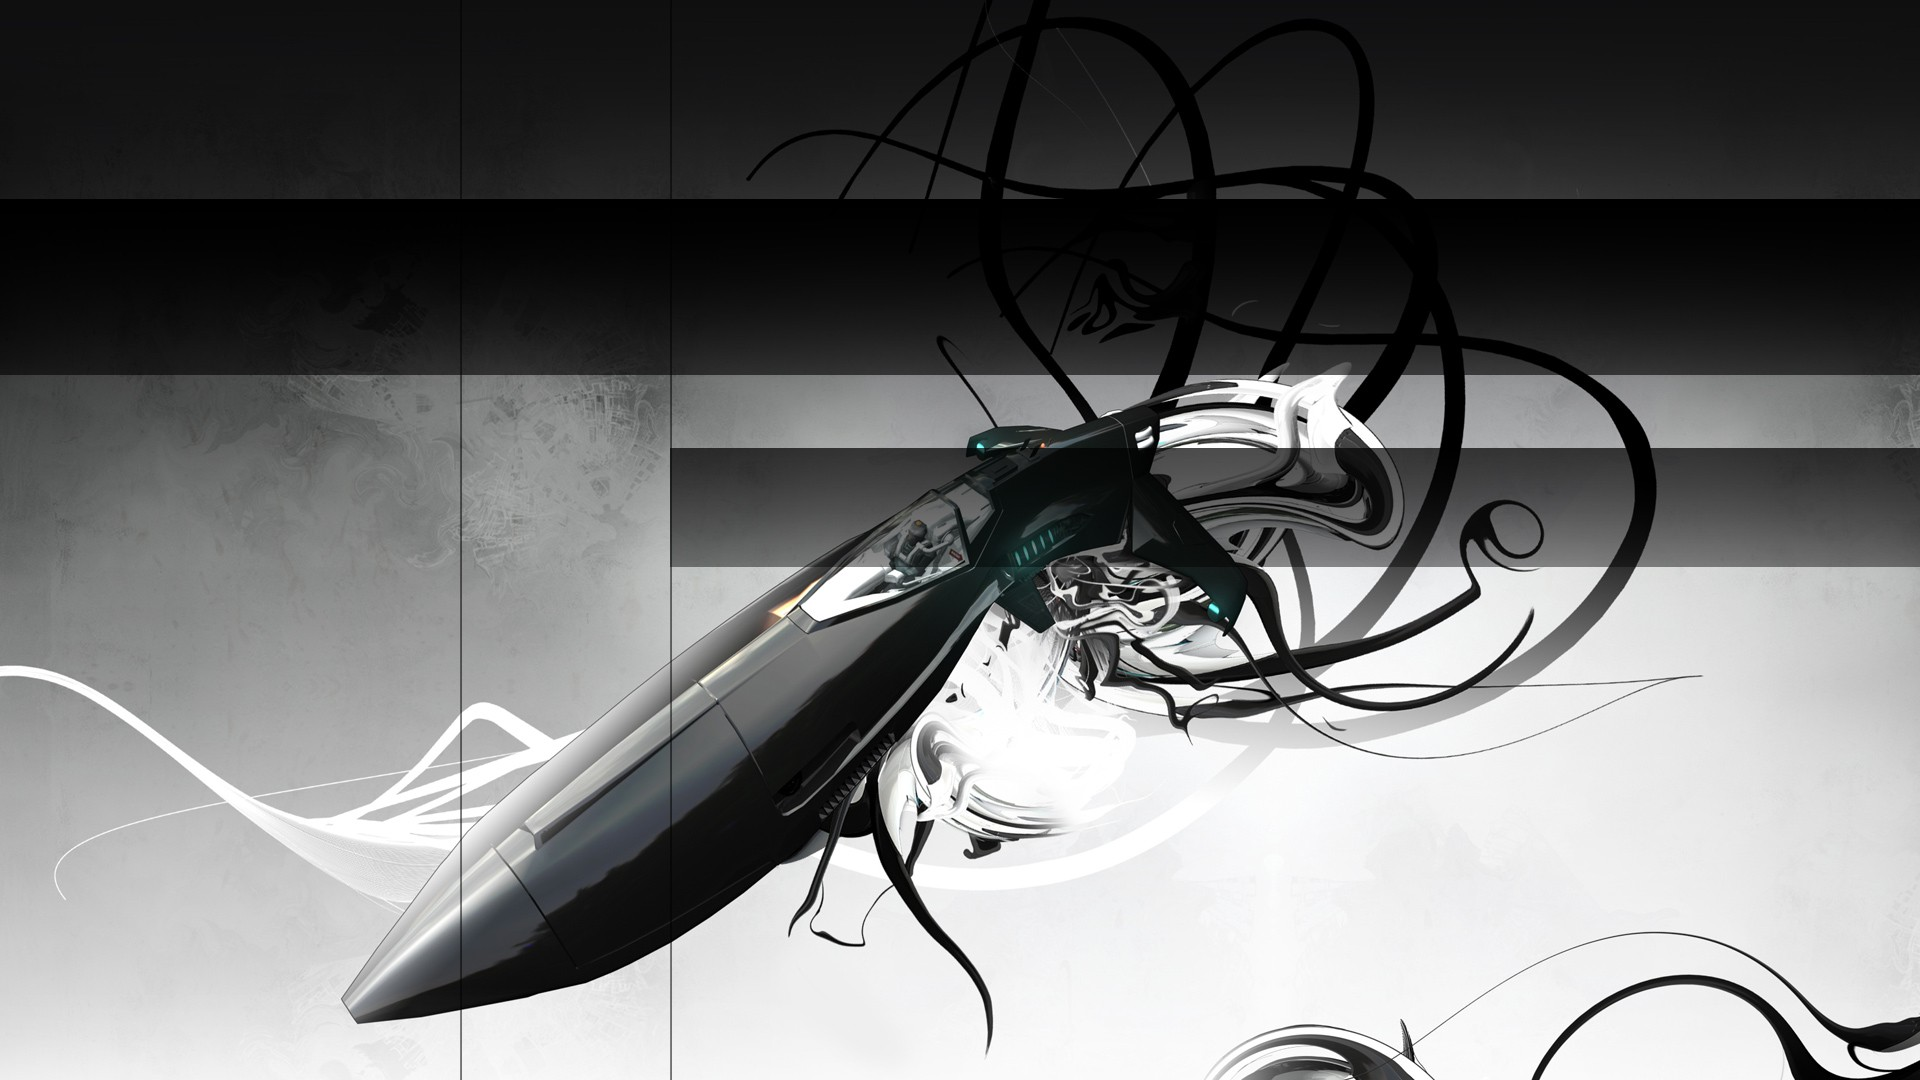 wallpaper : drawing, illustration, video games, glasses, wipeout hd